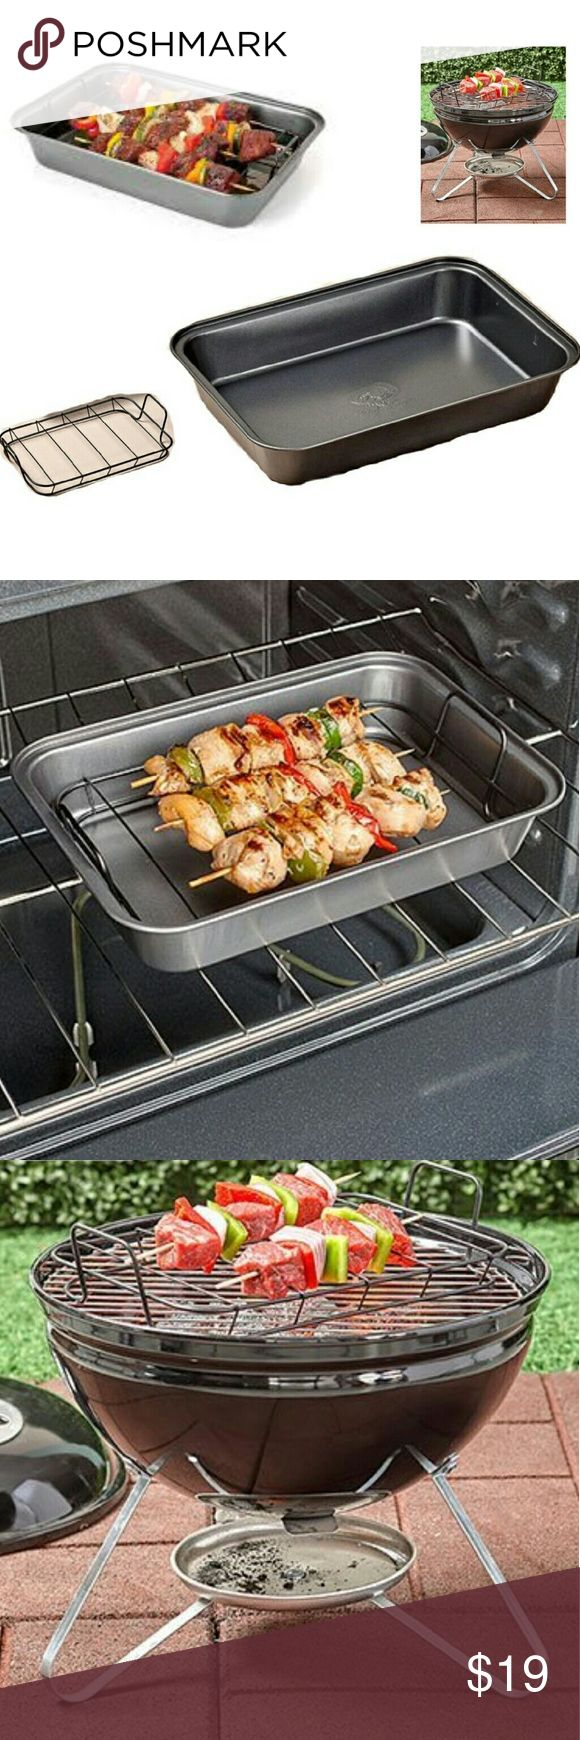 Best 25 Grill Grates Ideas On Pinterest Camping Cooking